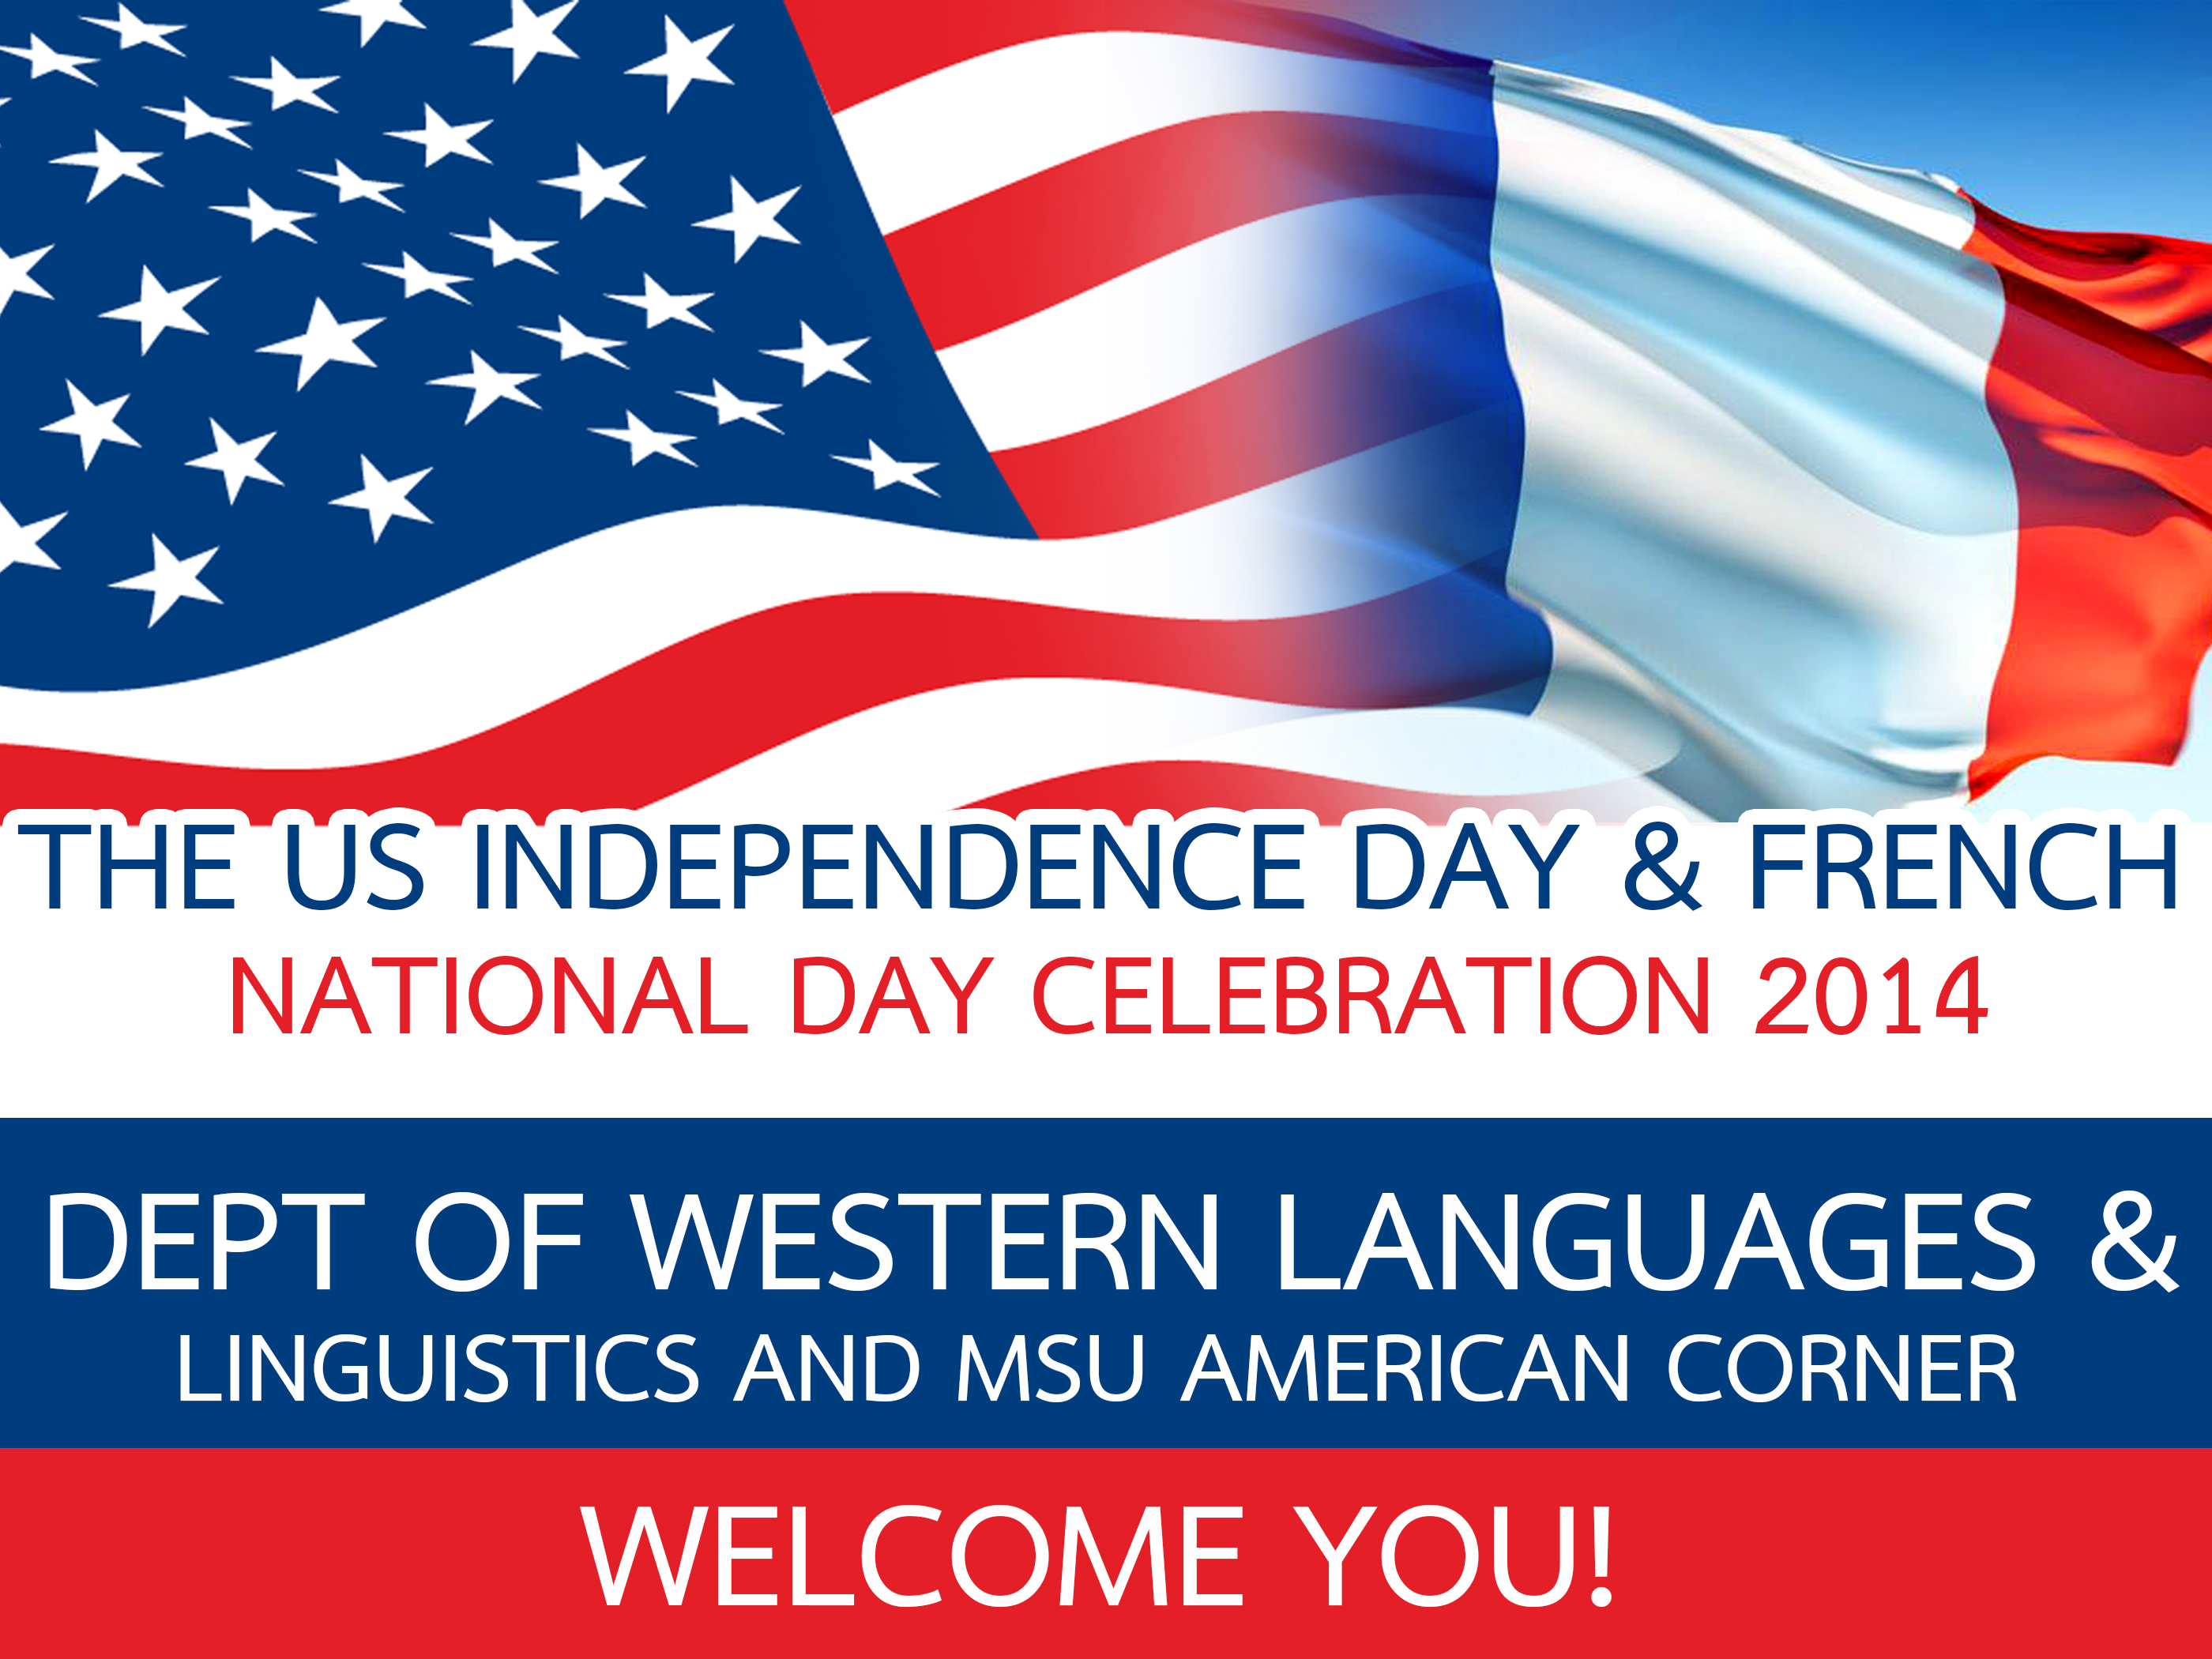 THE US INDEPENDENCE DAY & FRENCH NATIONAL DAY CELEBRATION 2014